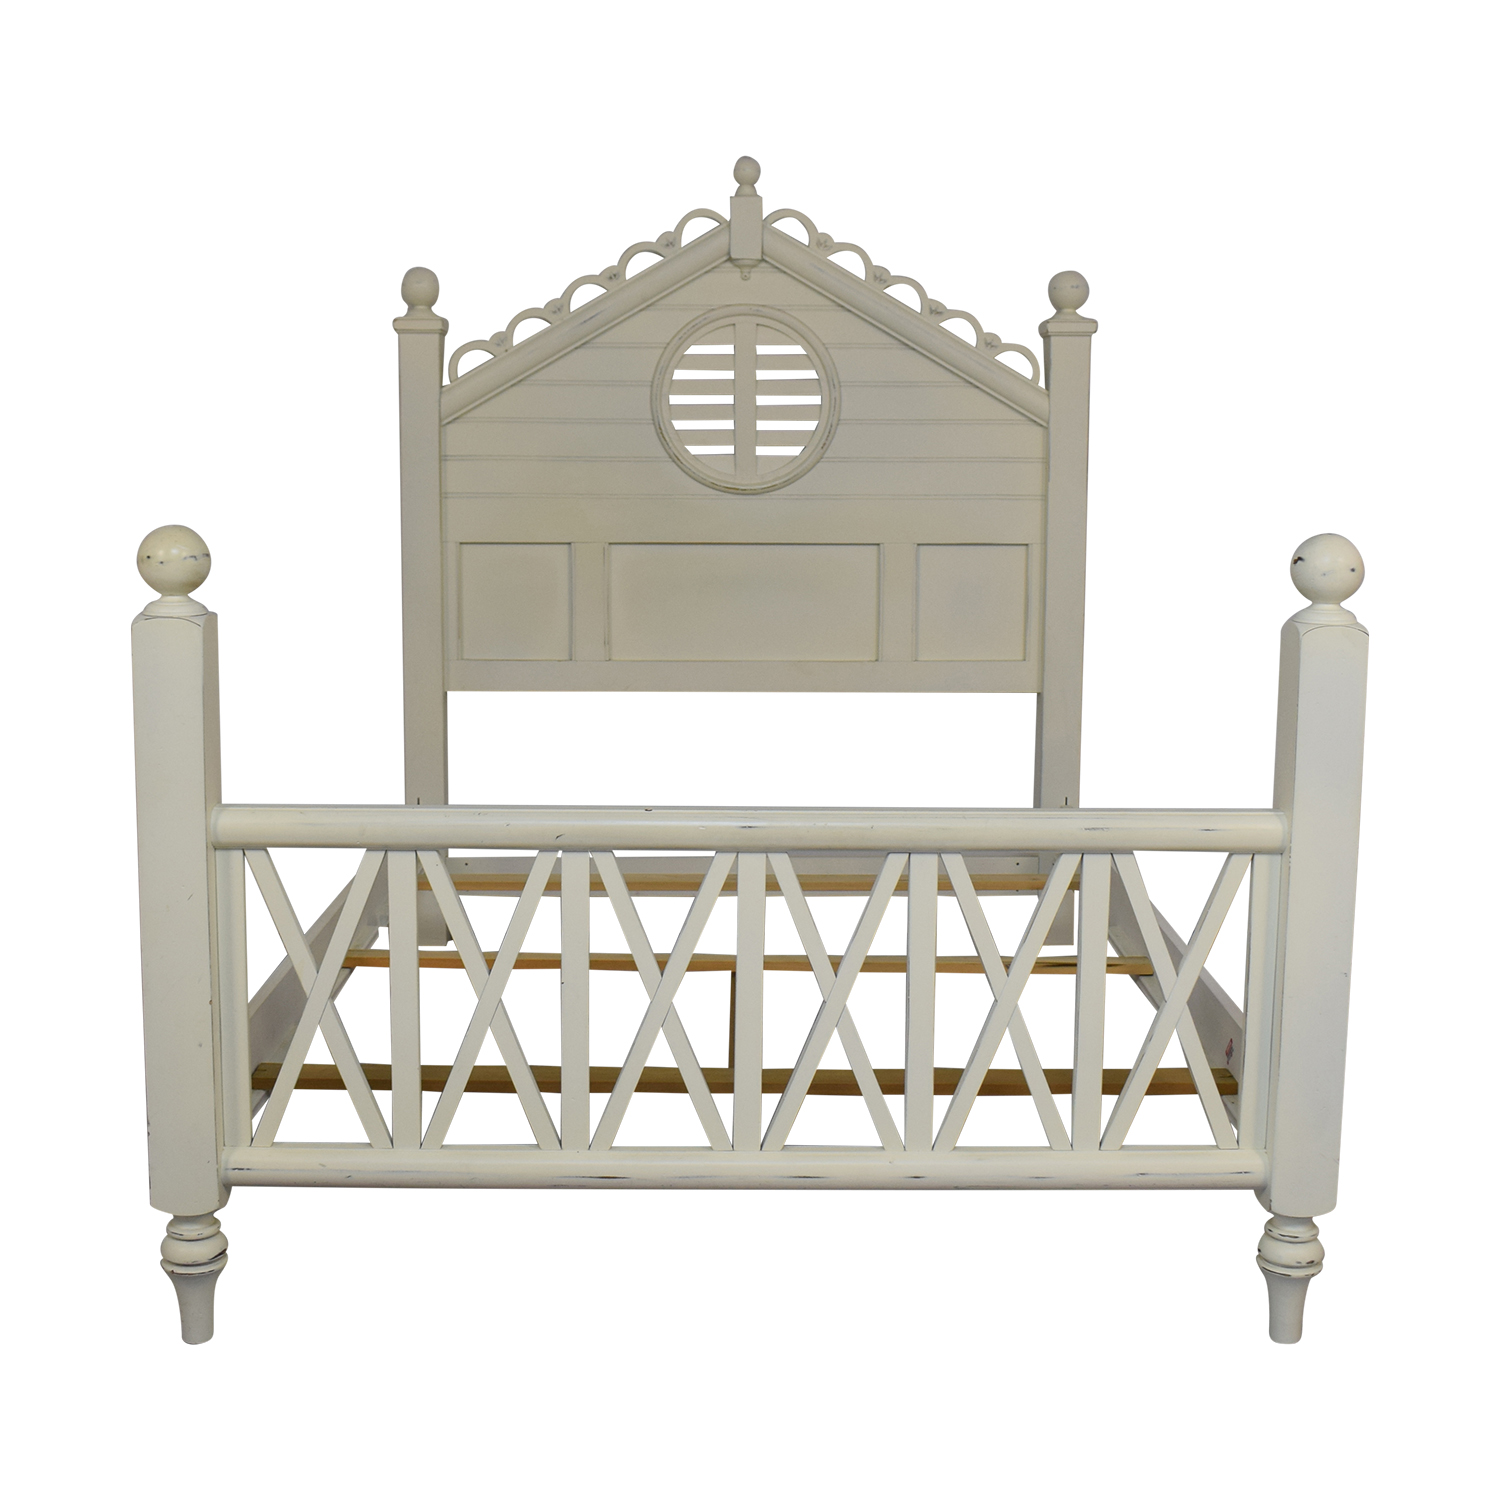 Lexington Furniture Seaside Retreat Coastal Cottage Queen Bed Lexington Furniture